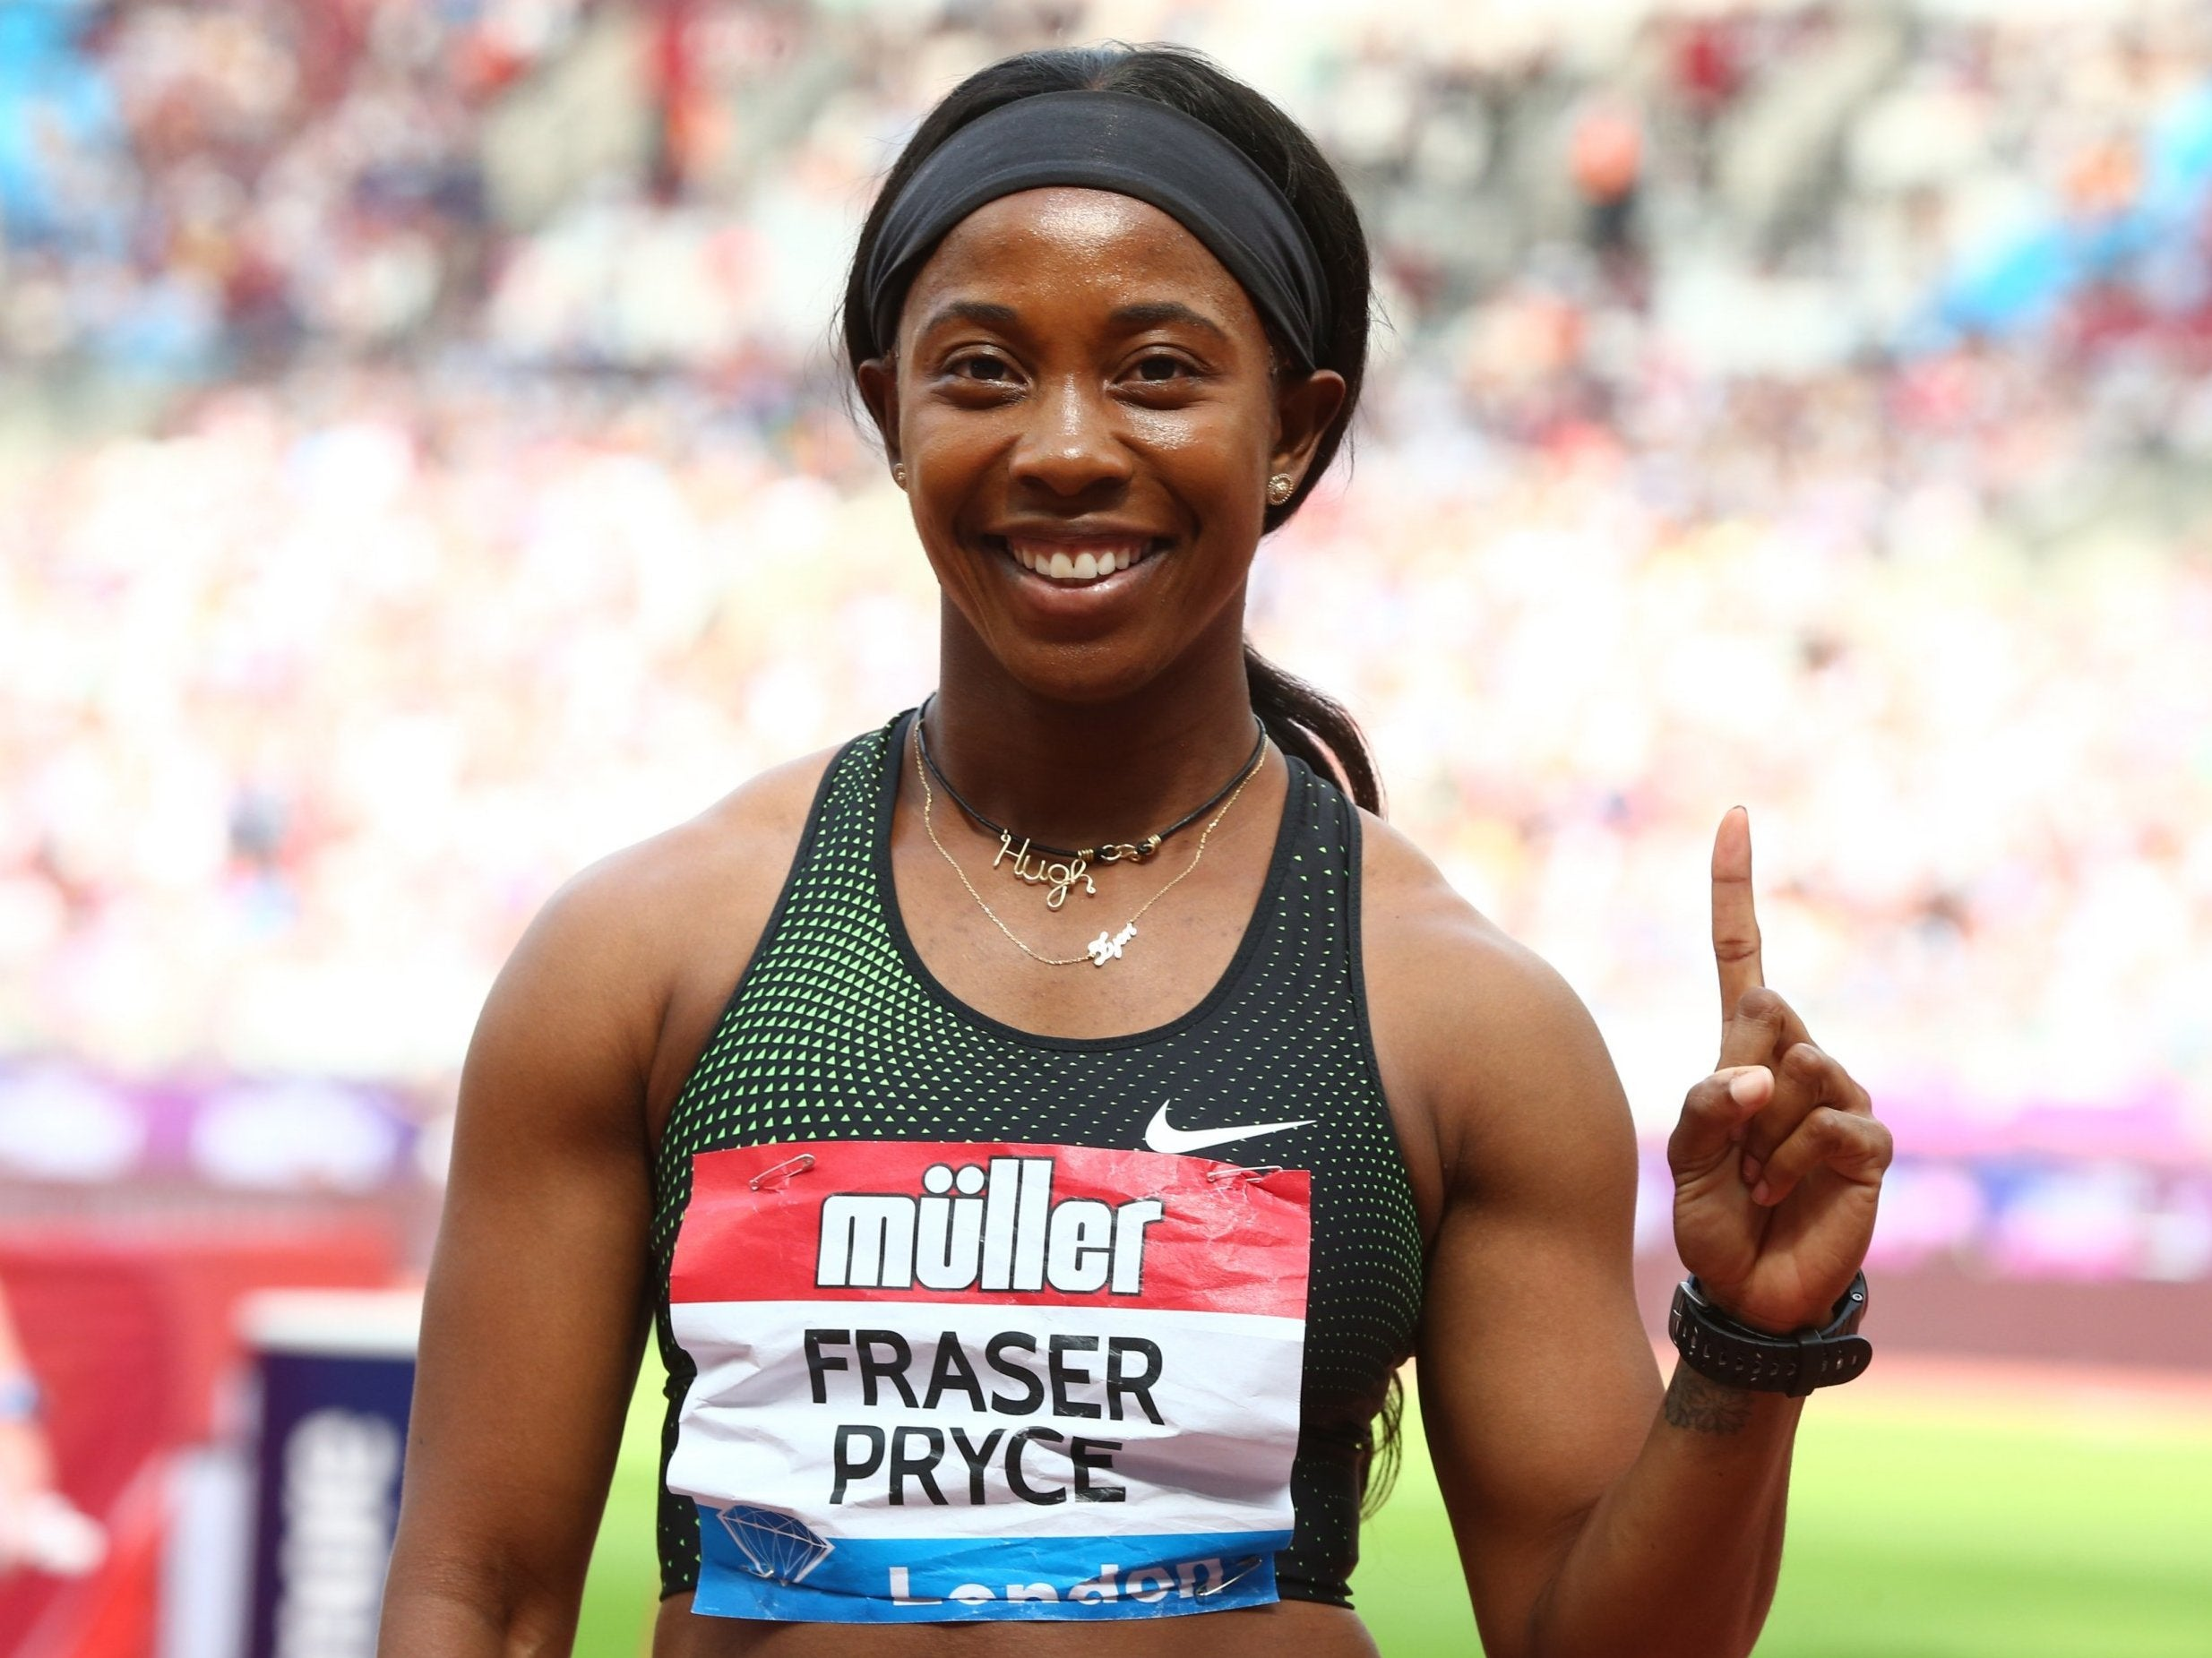 Anniversary Games 2018: New mum Shelly-Ann Fraser-Pryce back under 11 seconds to win 100m